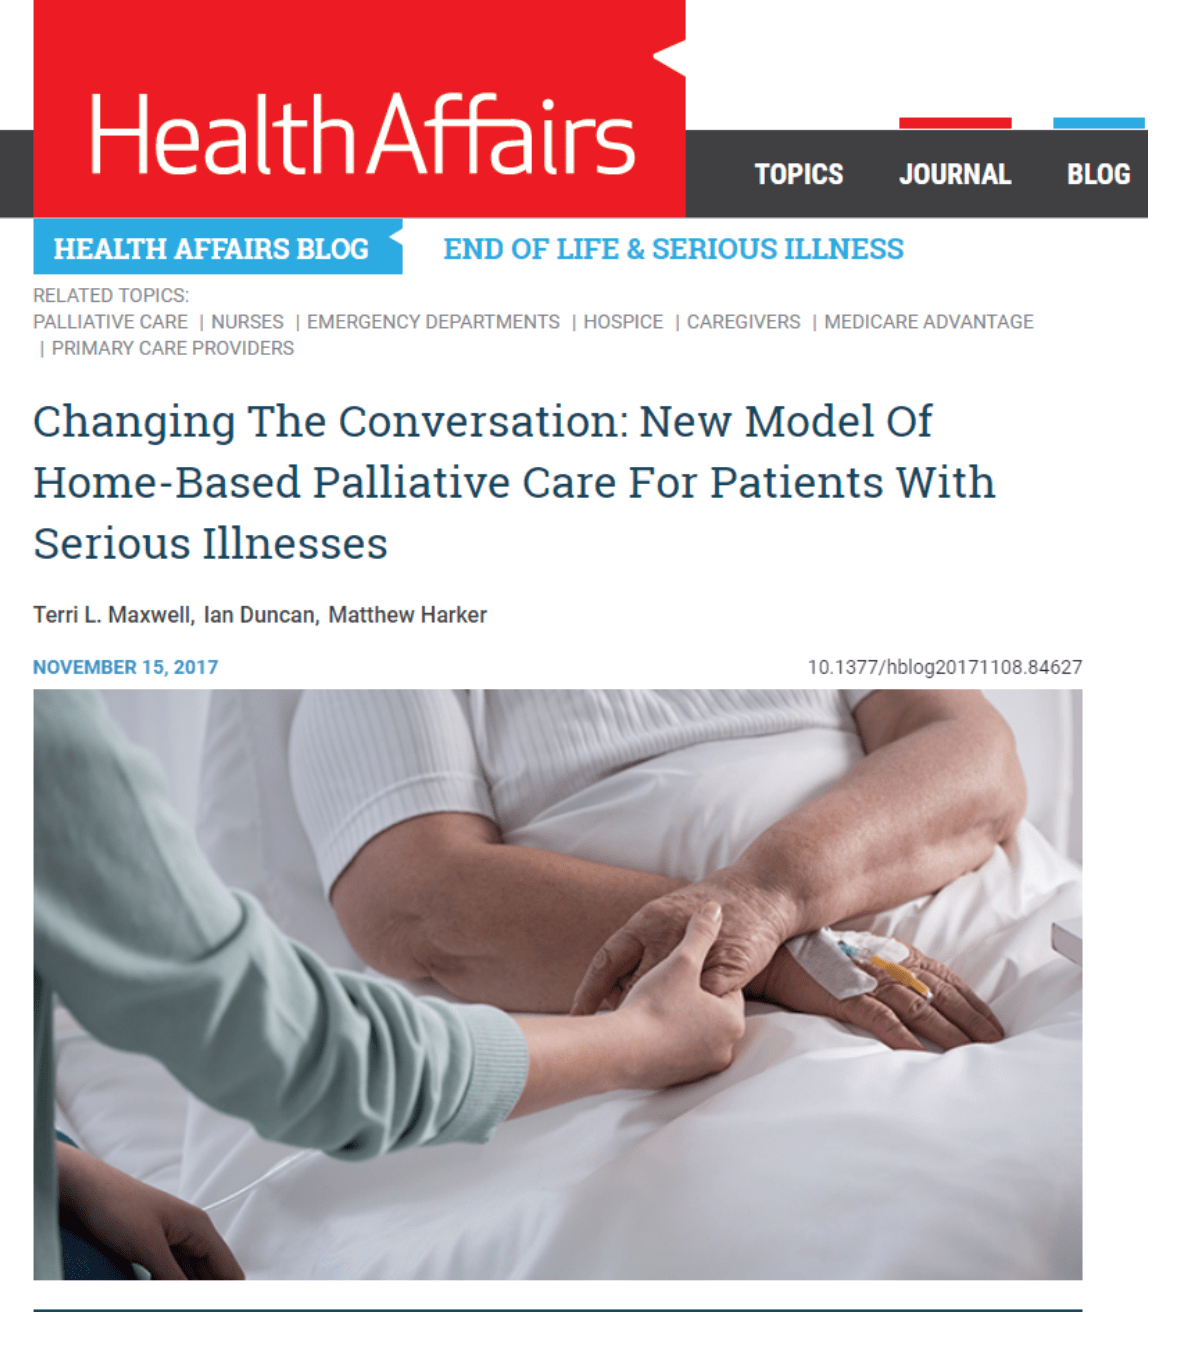 New Model Of Home-Based Palliative Care For Patients With Serious Illnesses